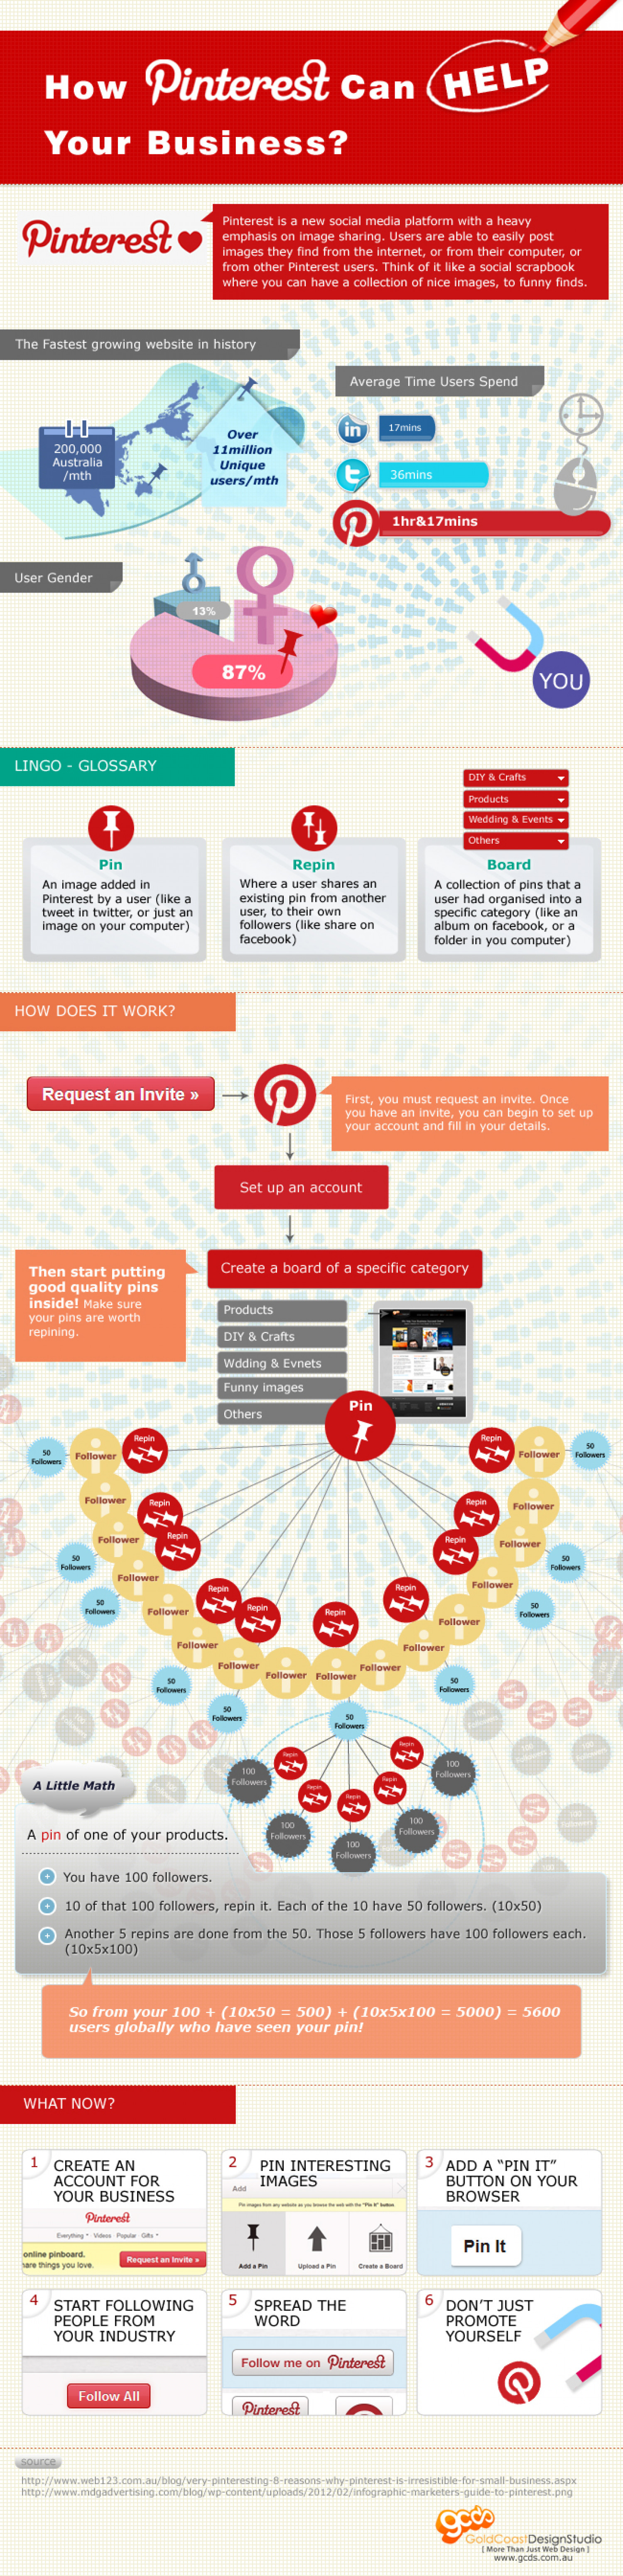 How Pinterest Can Help Your Business Infographic